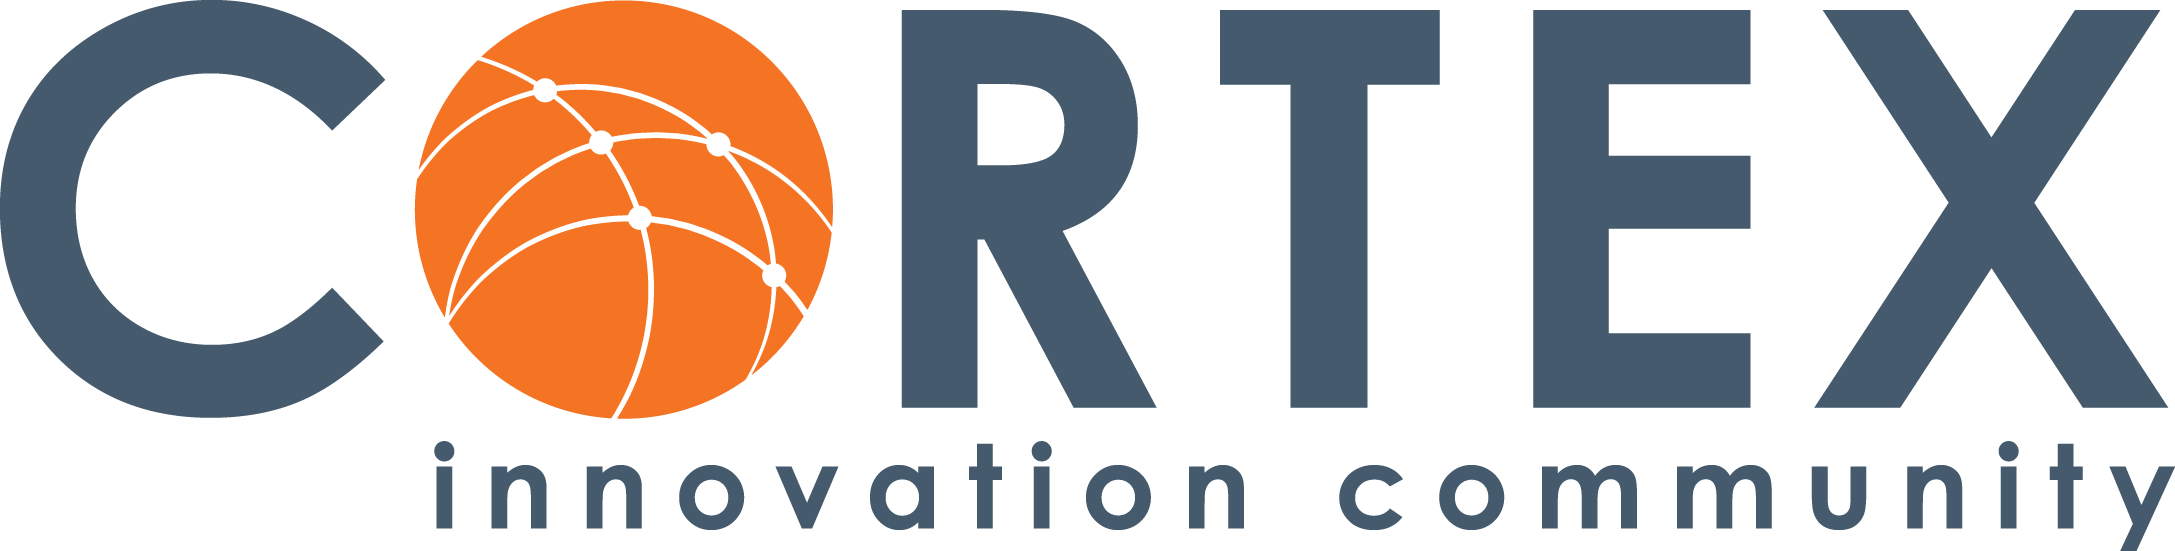 Cortex Innovation Community